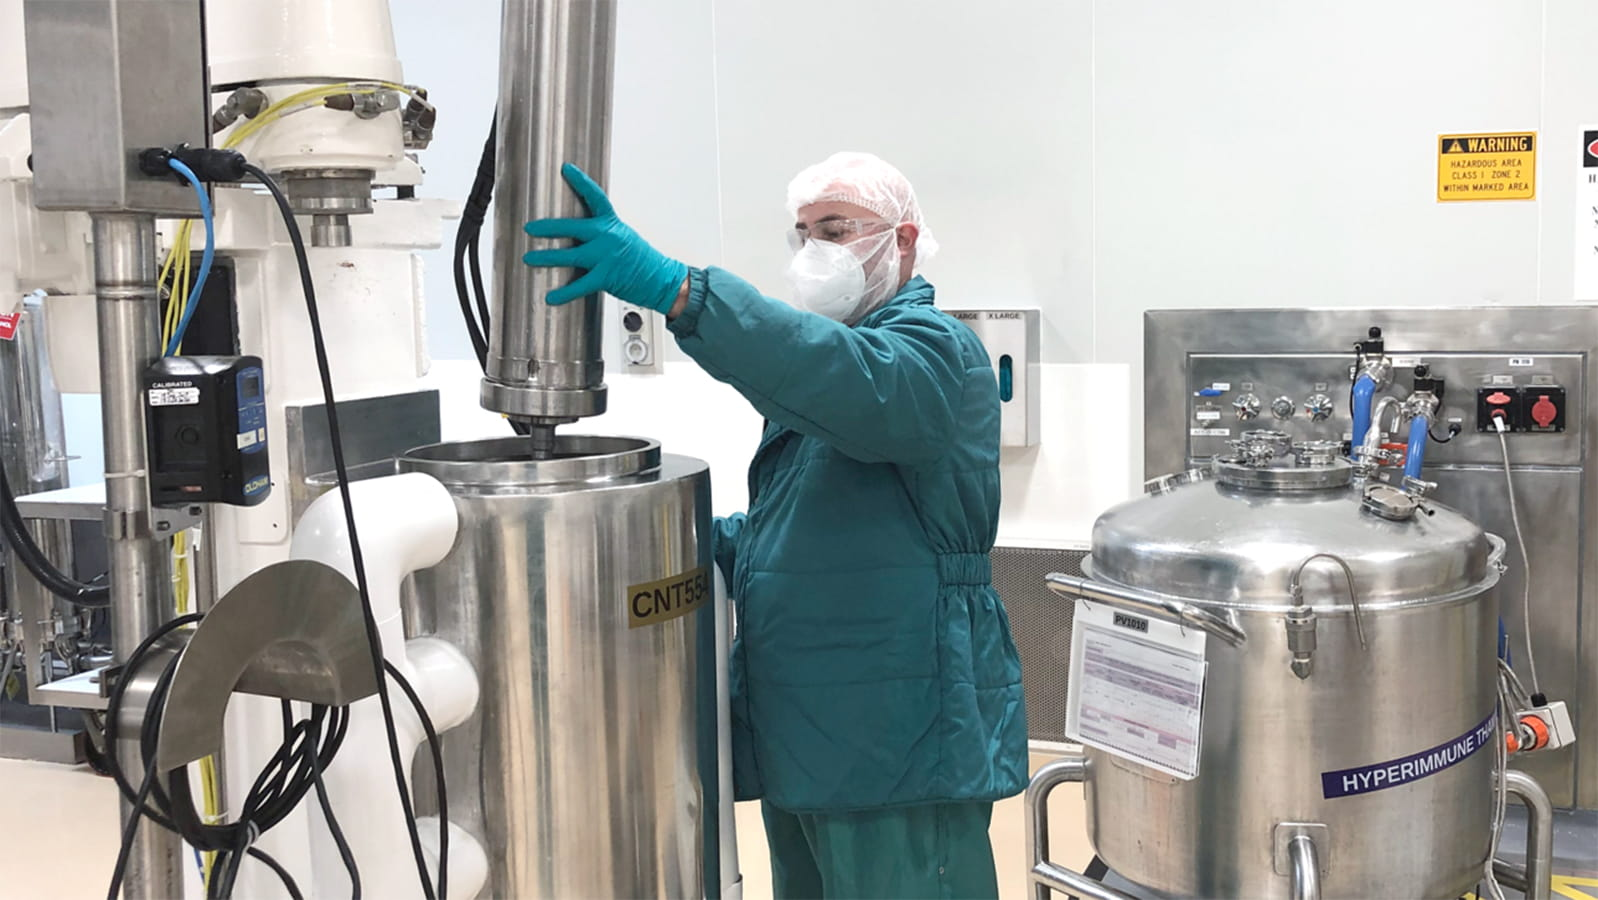 Production of potential COVID-19 hyperimmune treatment at CSL Behring Broadmeadows